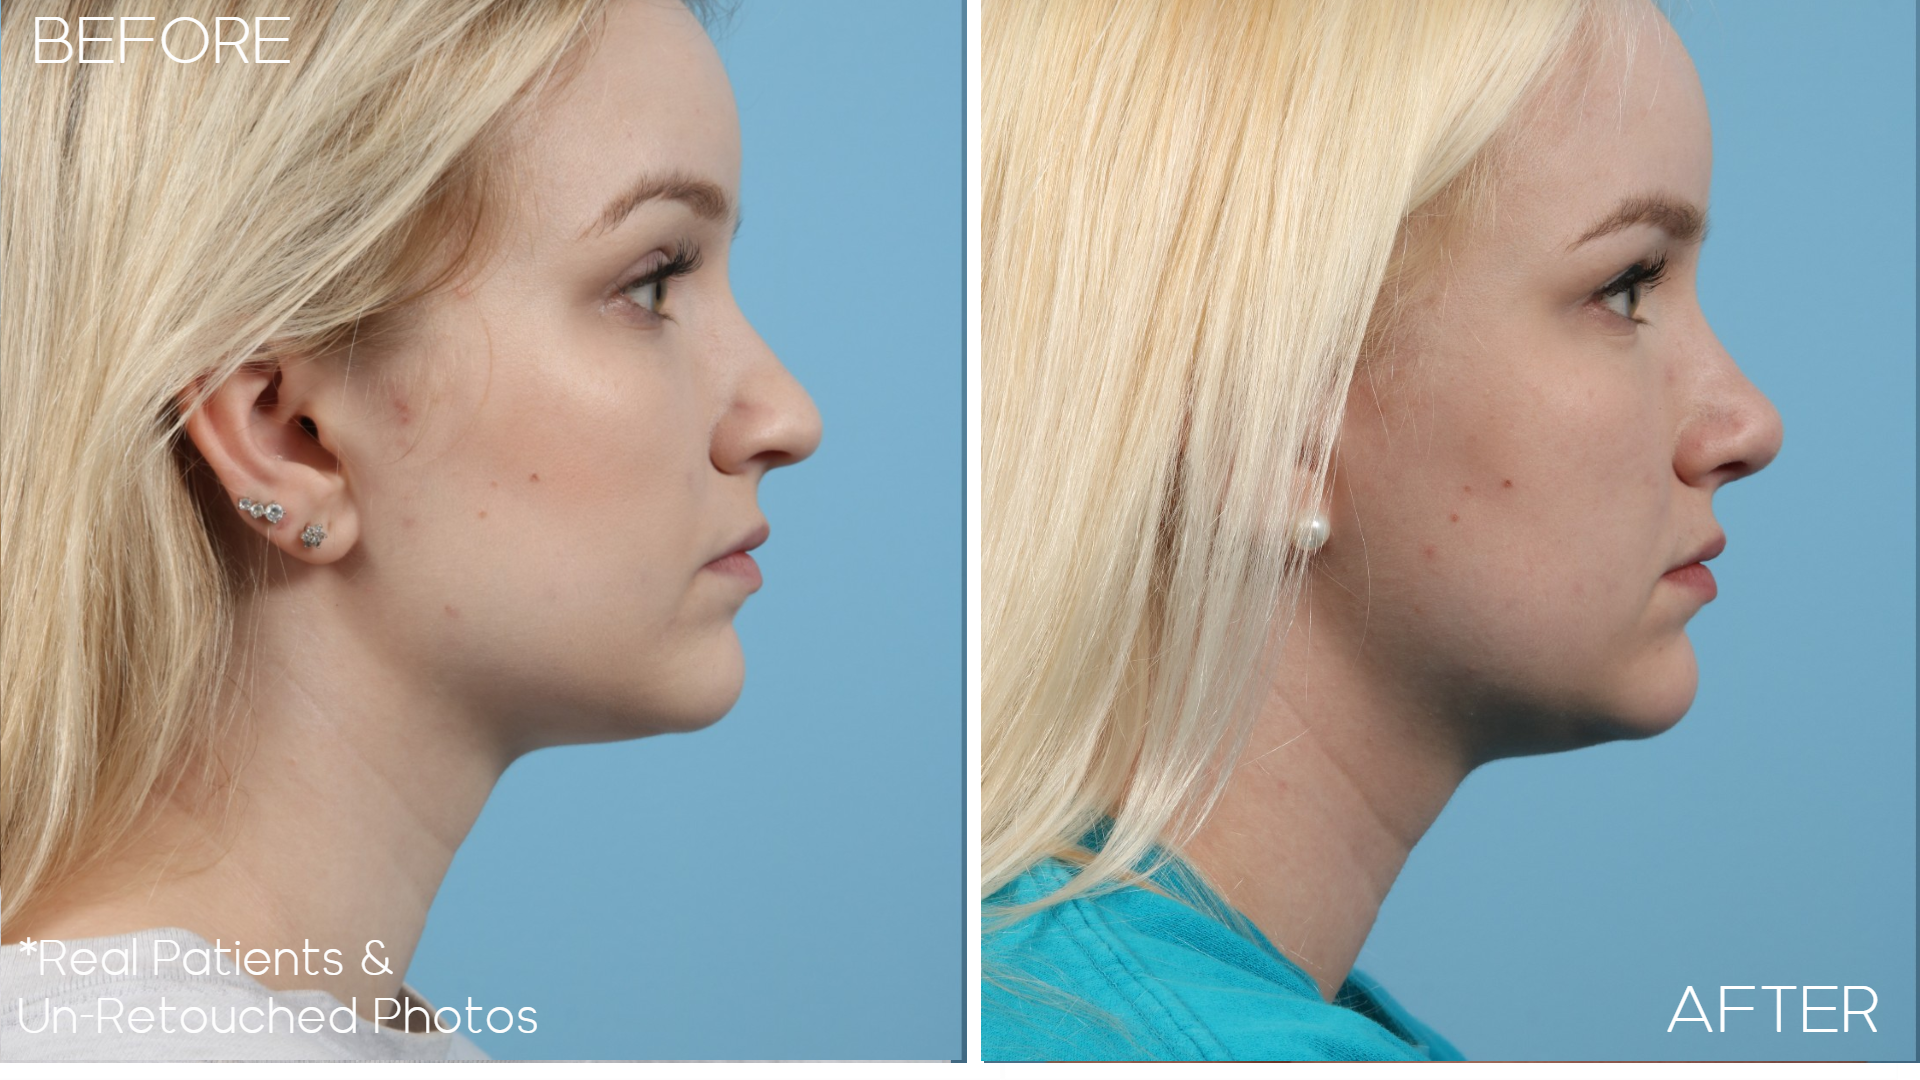 Case-1980-Rhinoplasty-Side-Before-and-After